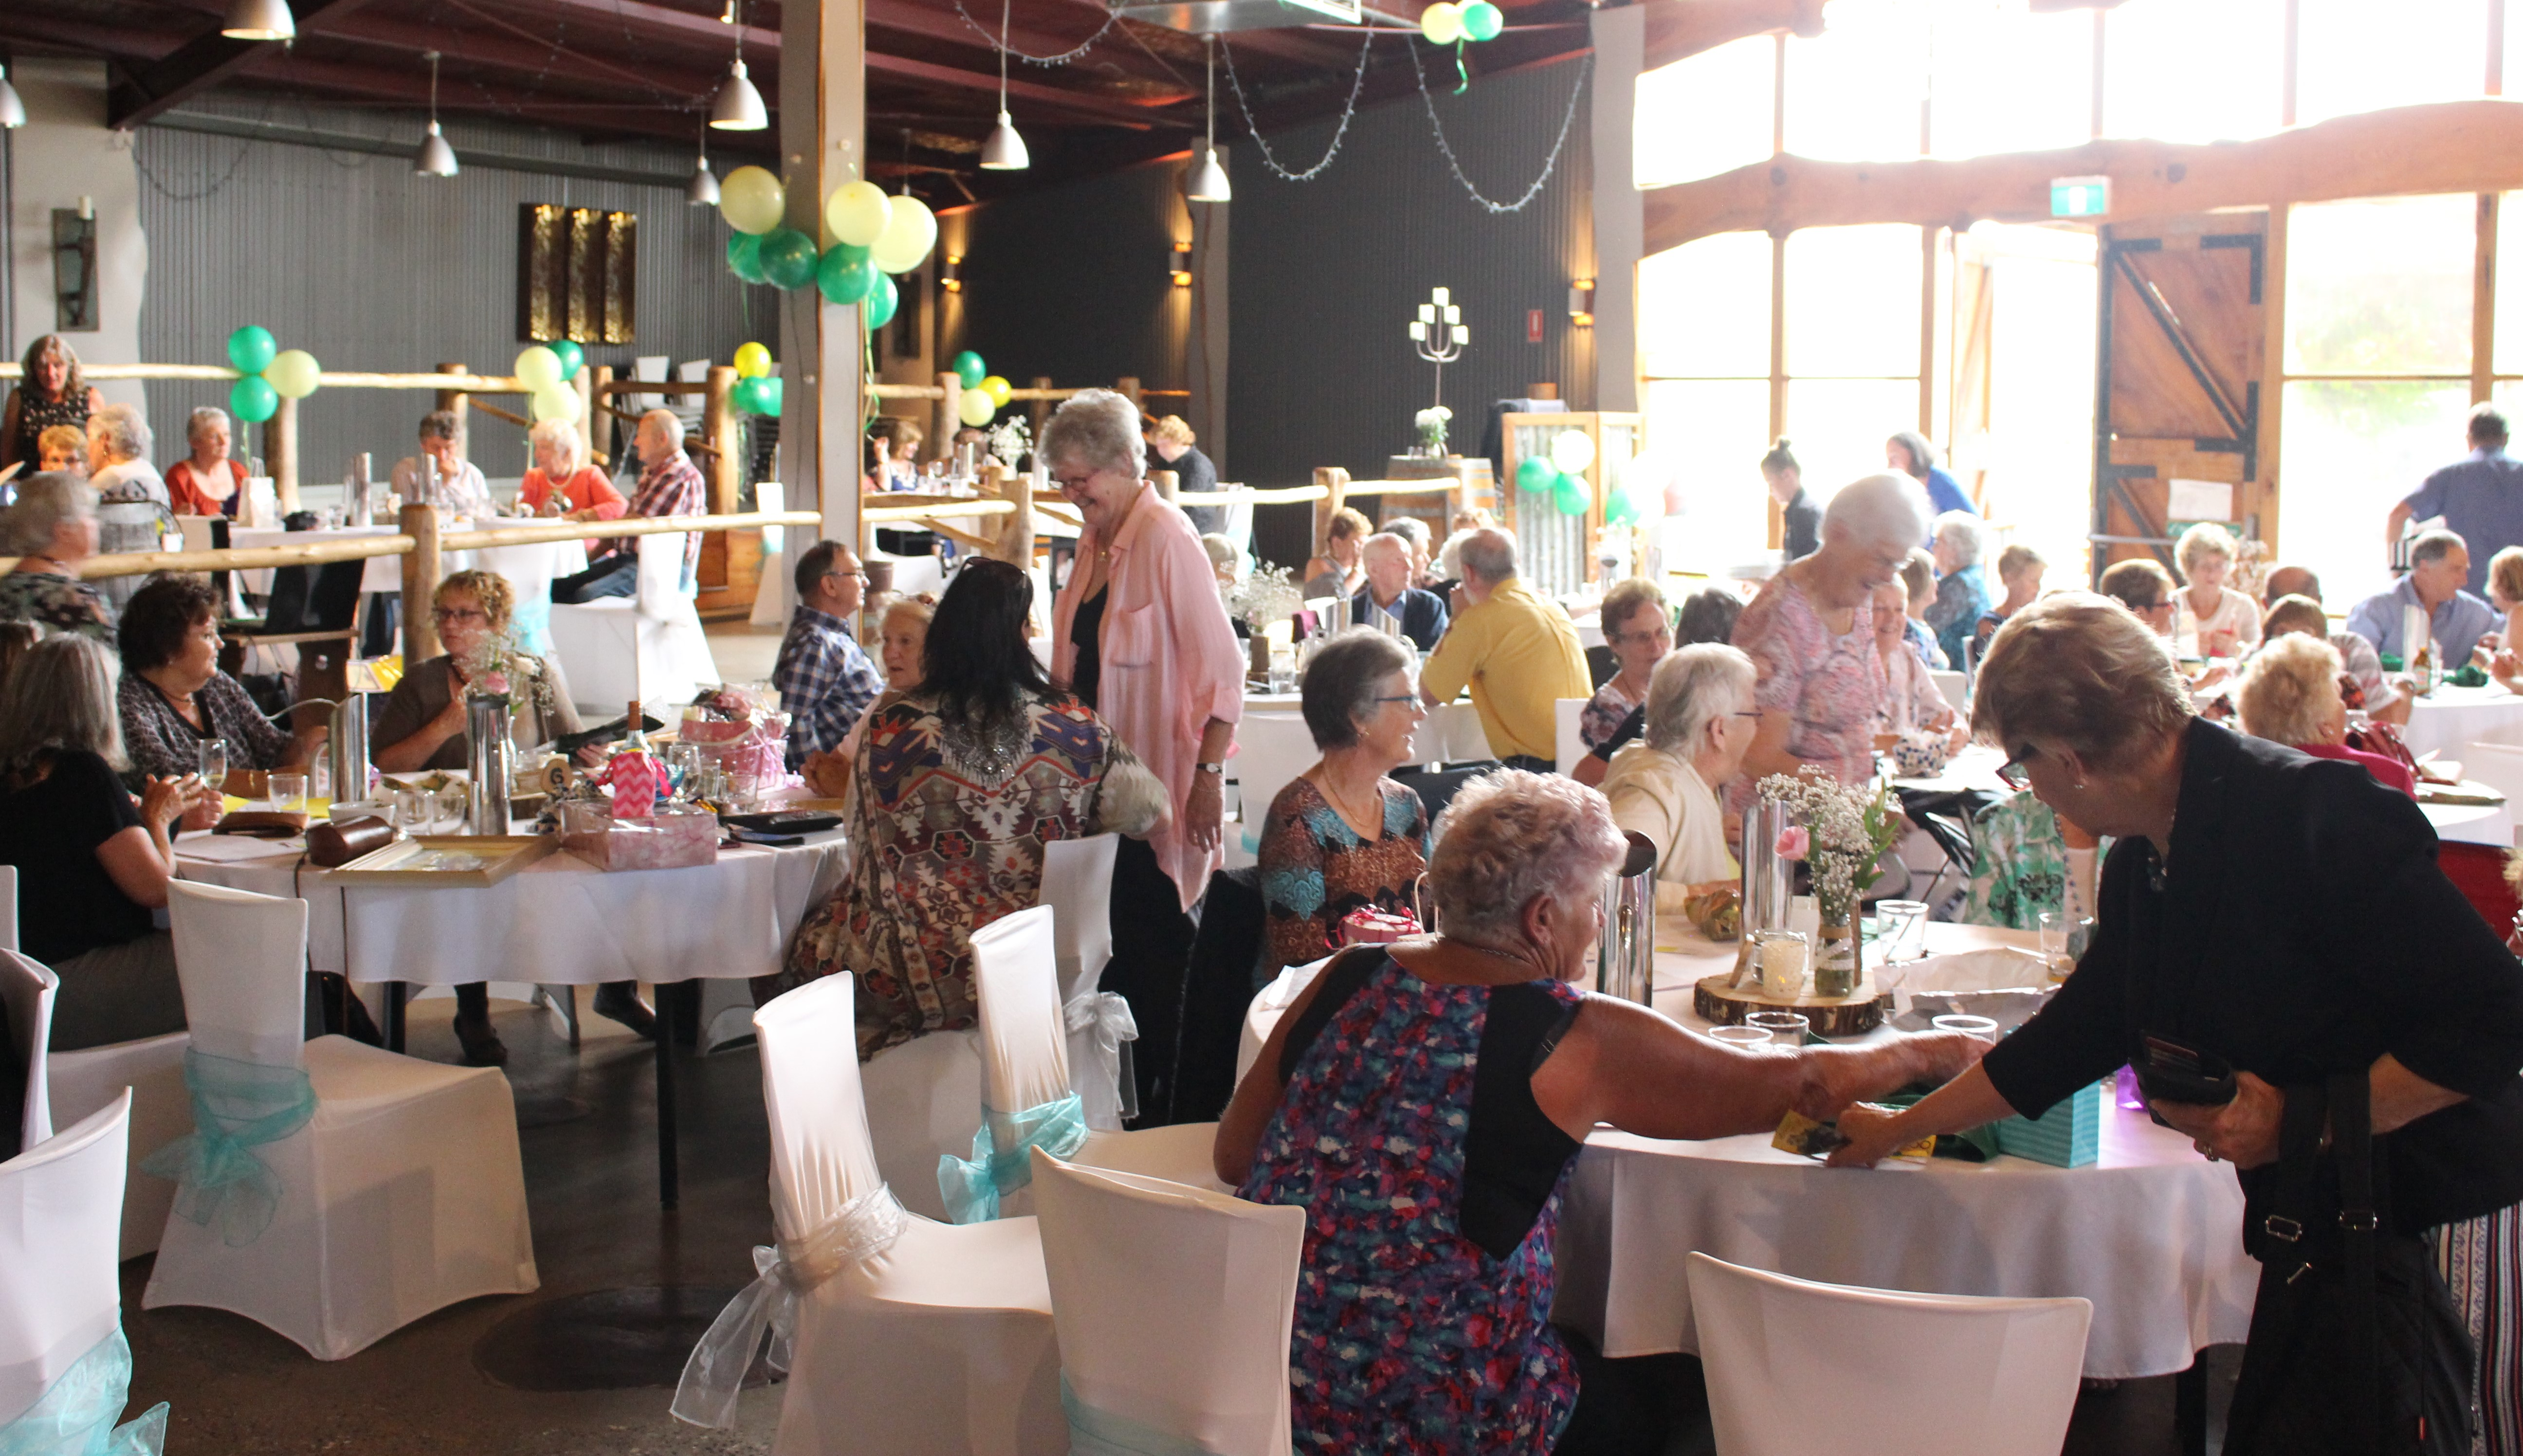 Around 150 people gathered for a lunchtime auction at Oaklands in Pambula, raising money for Can Assist. Photo: Ian Campbell.